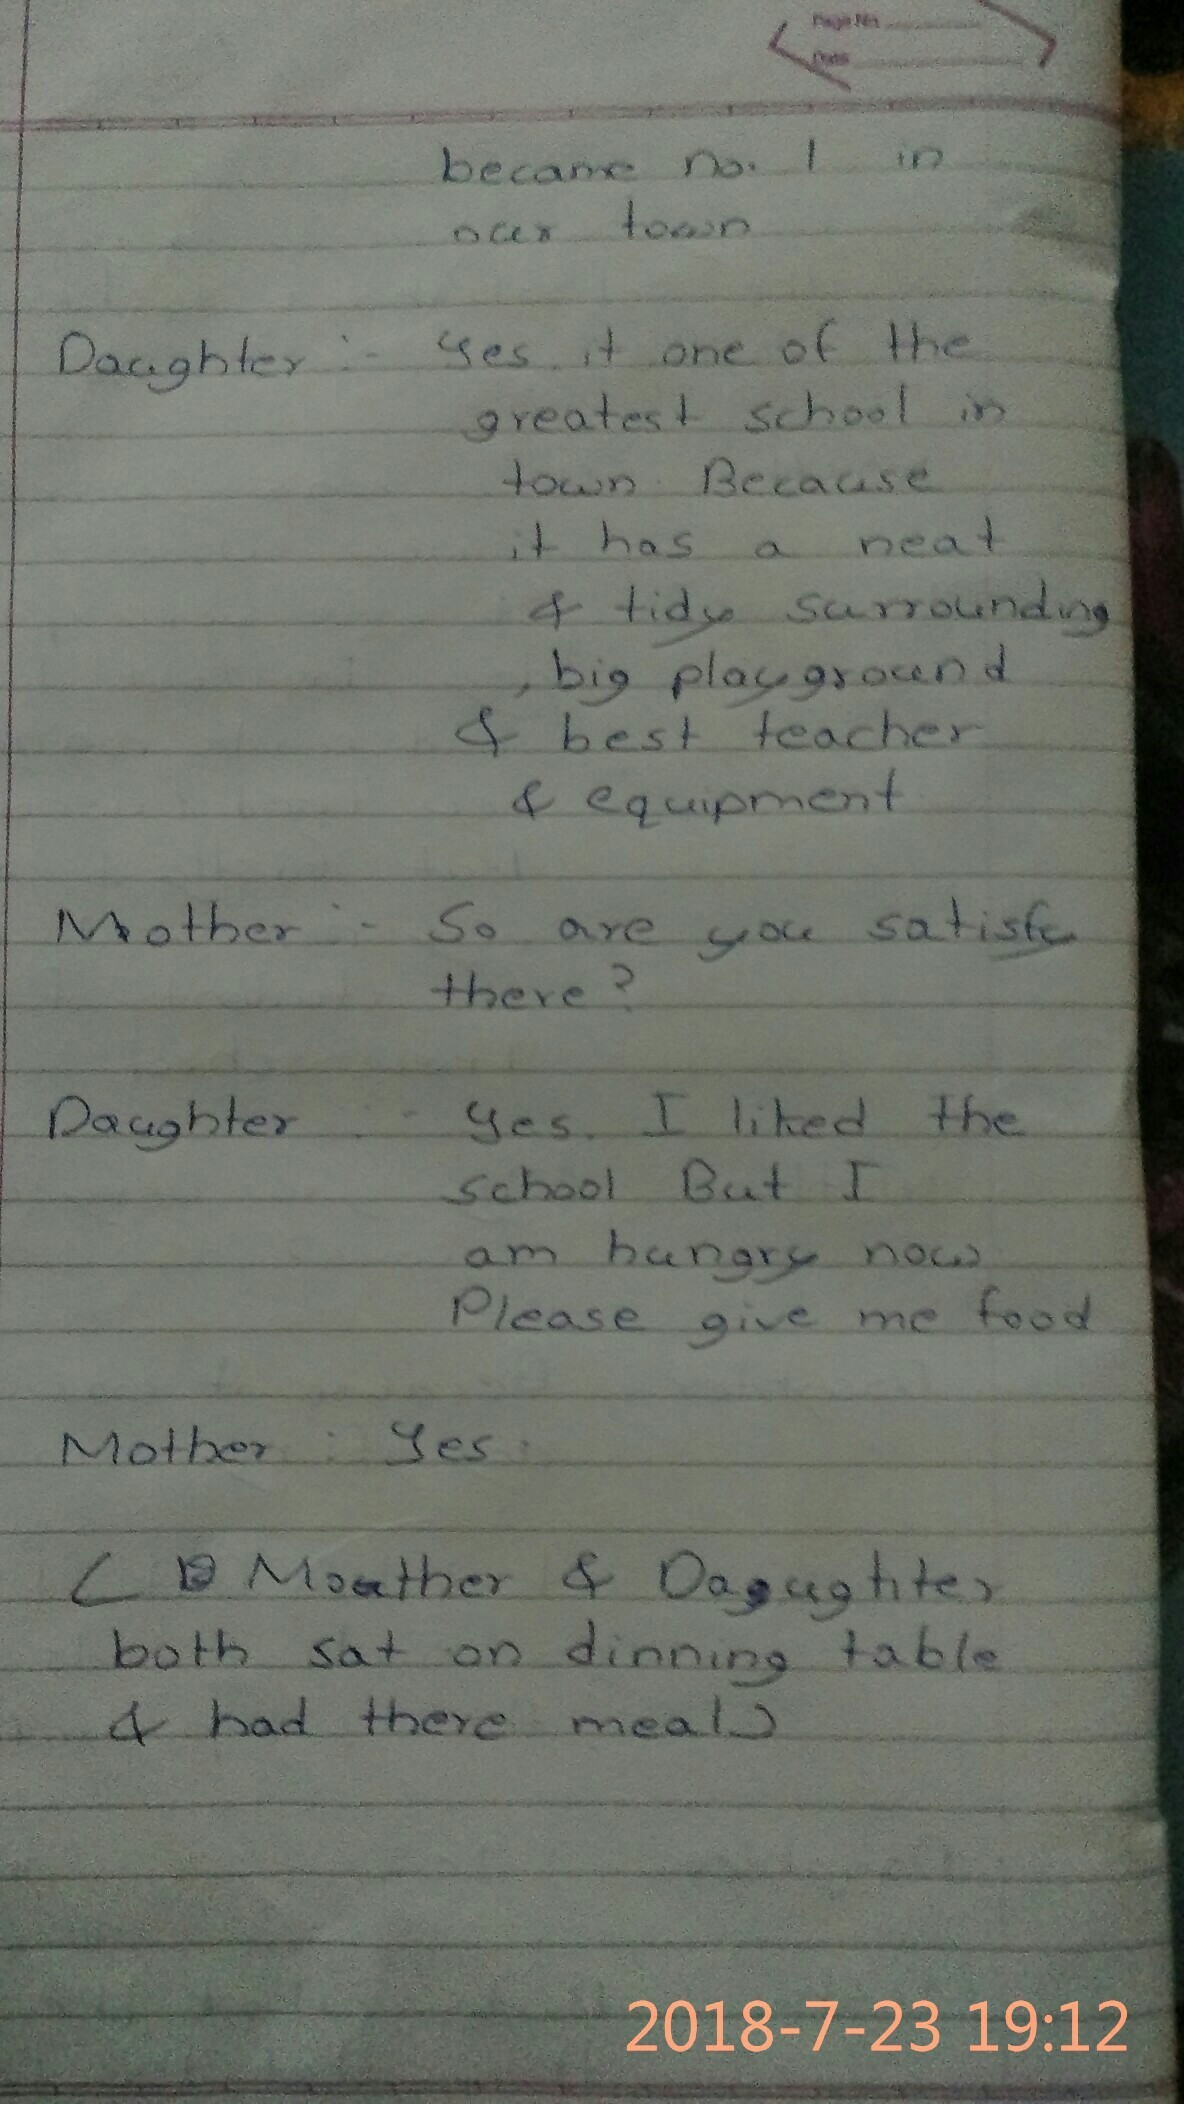 writting a dialogue between a mother and daughter discussing the